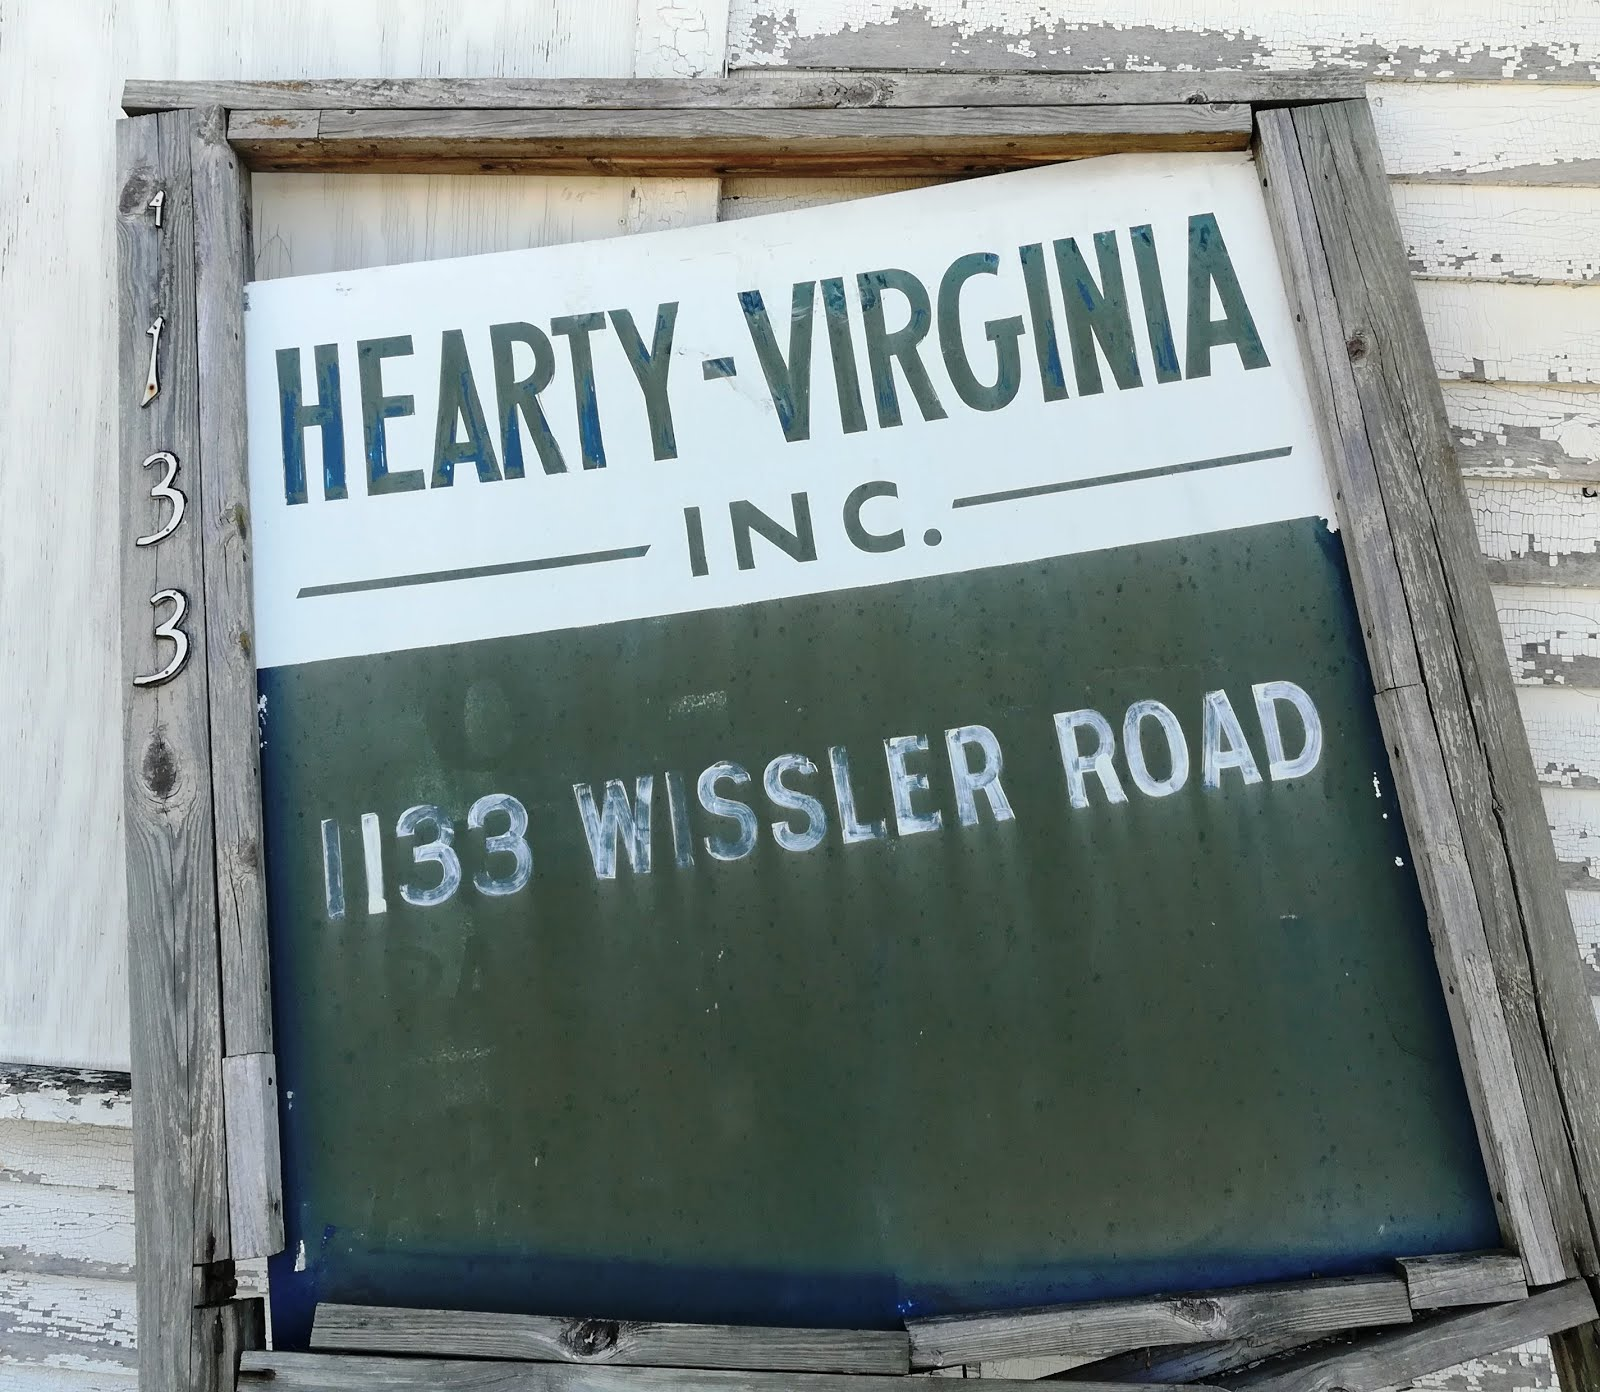 Hearty-Virginia